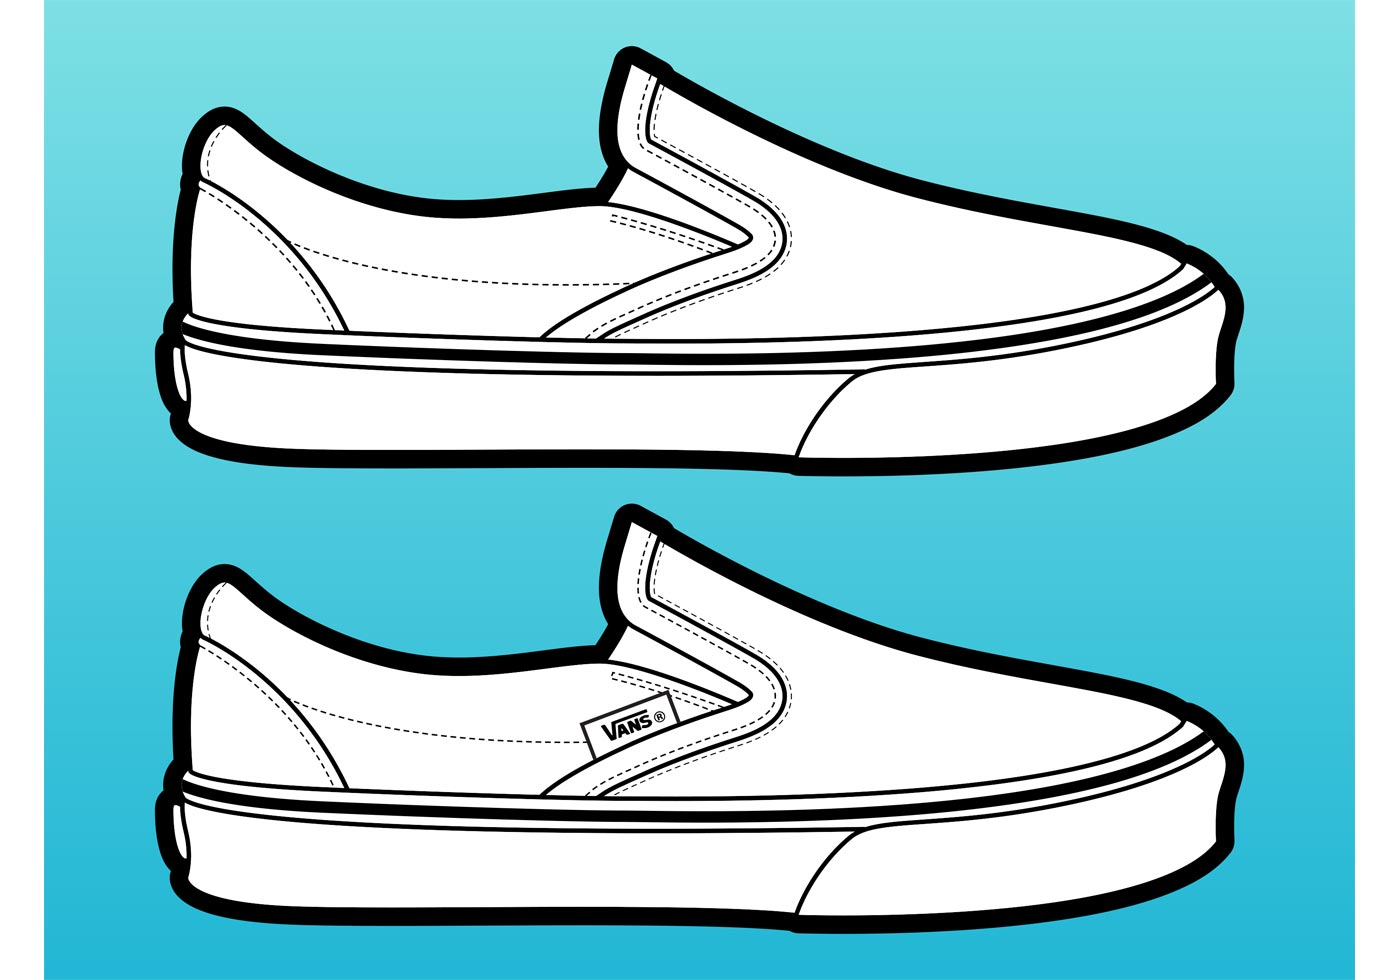 vans shoes vector download free vectors clipart graphics vector art https www vecteezy com vector art 74288 vans shoes vector